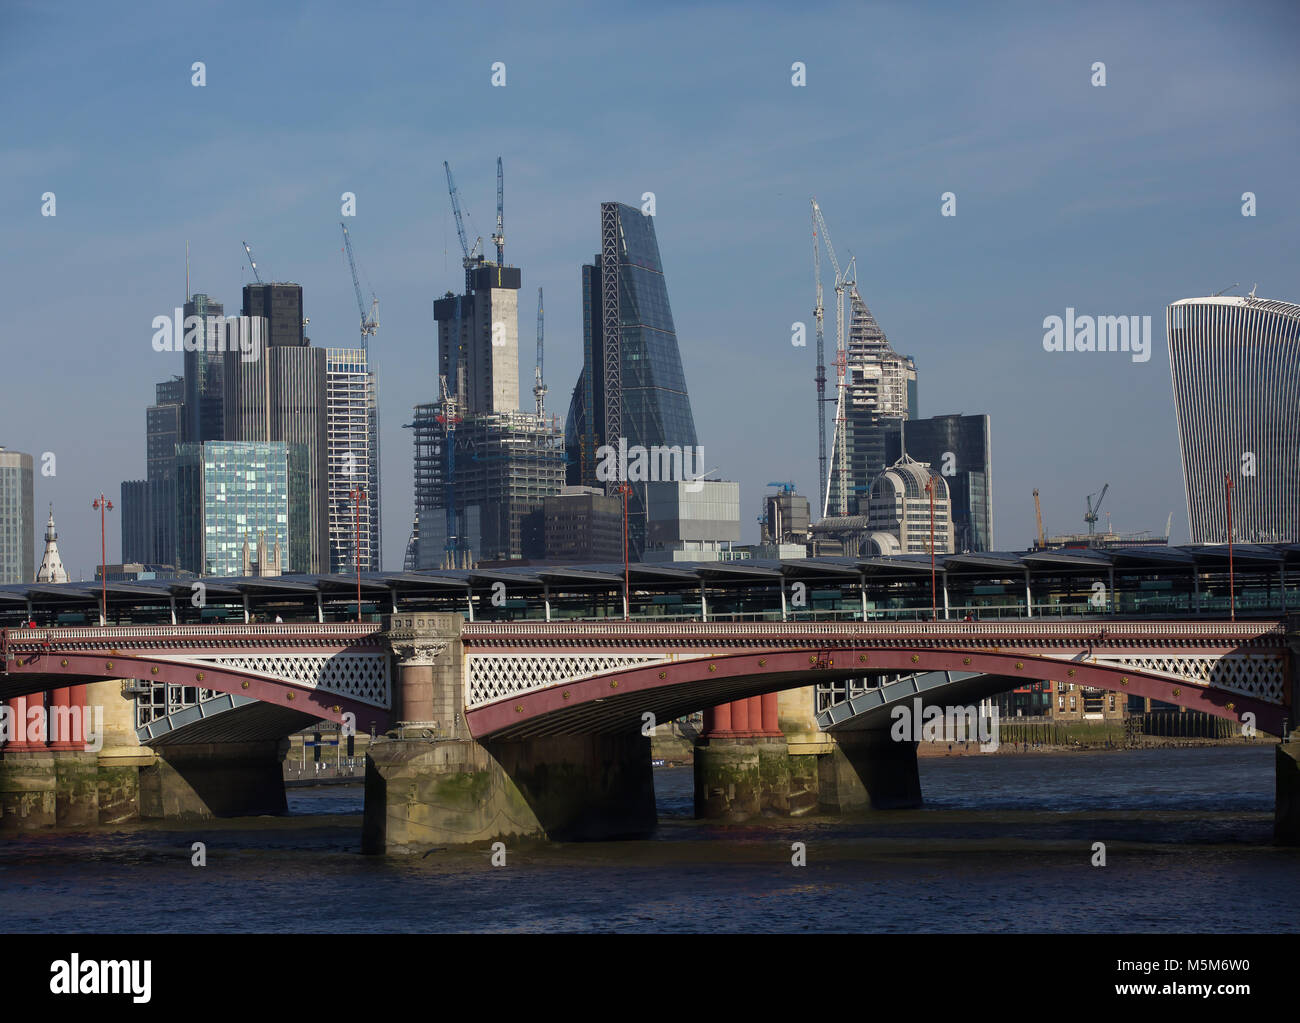 London, UK, 24 Feb 2018. Blue skies over the London Skyline and the River Thames©Keith Larby/Alamy Live News - Stock Image